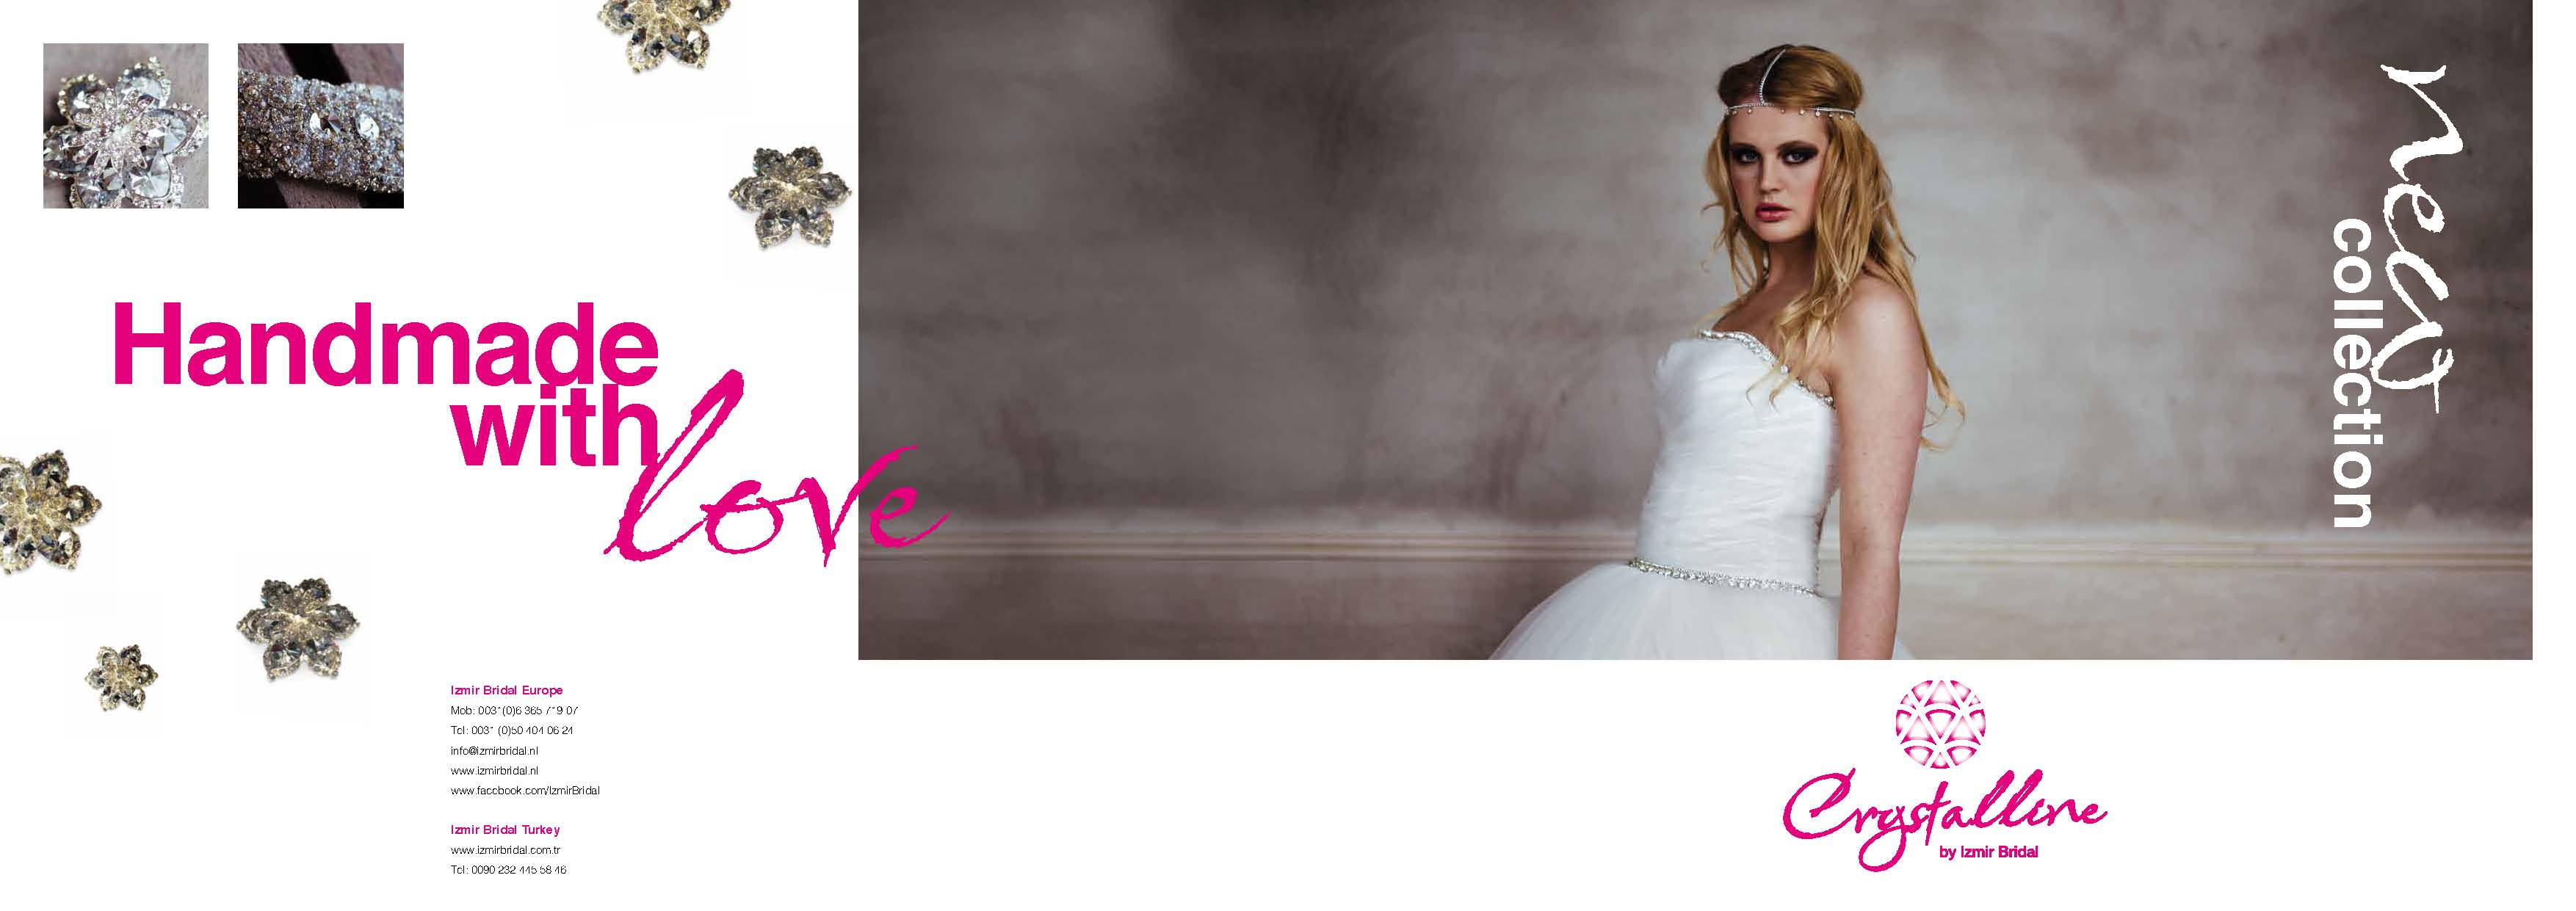 Izmir Bridal new collection - Crystalline_Page_01